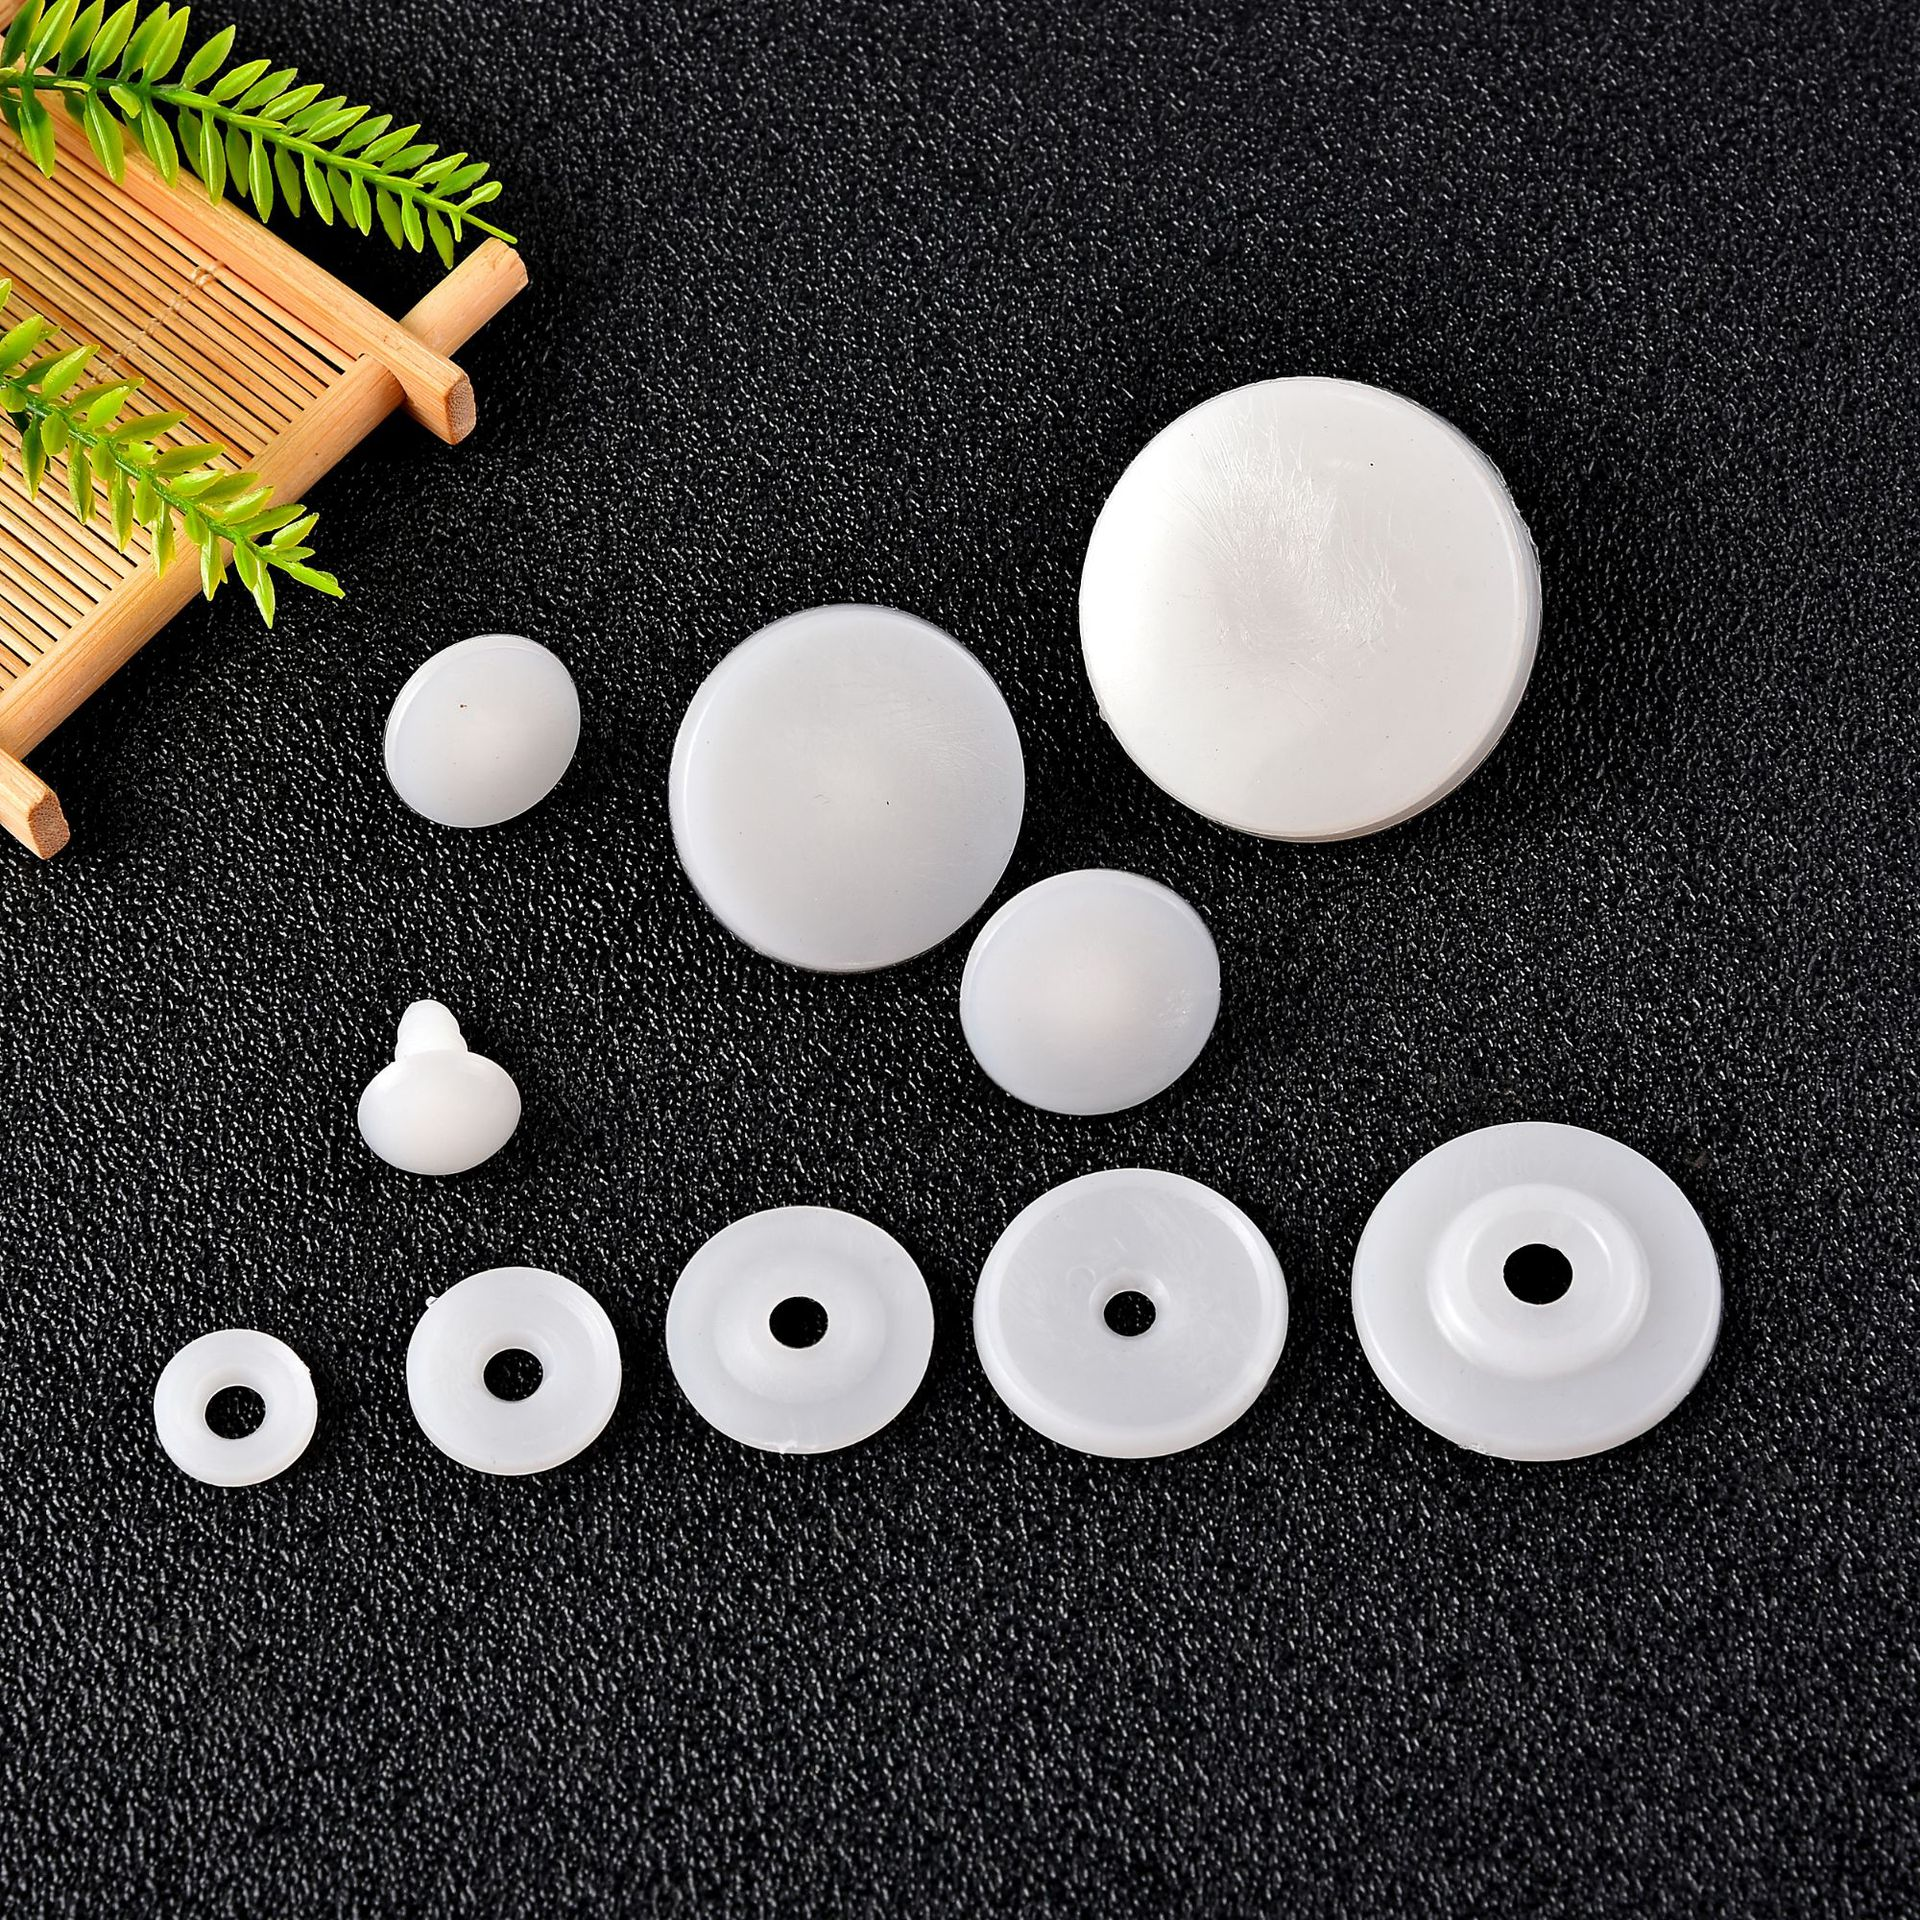 50set 15/20/25mm White Plastic DIY Doll Joints Teddy Bear Making Crafts Gifts Kids Toy Dolls Accessories Gifts For Child Toys